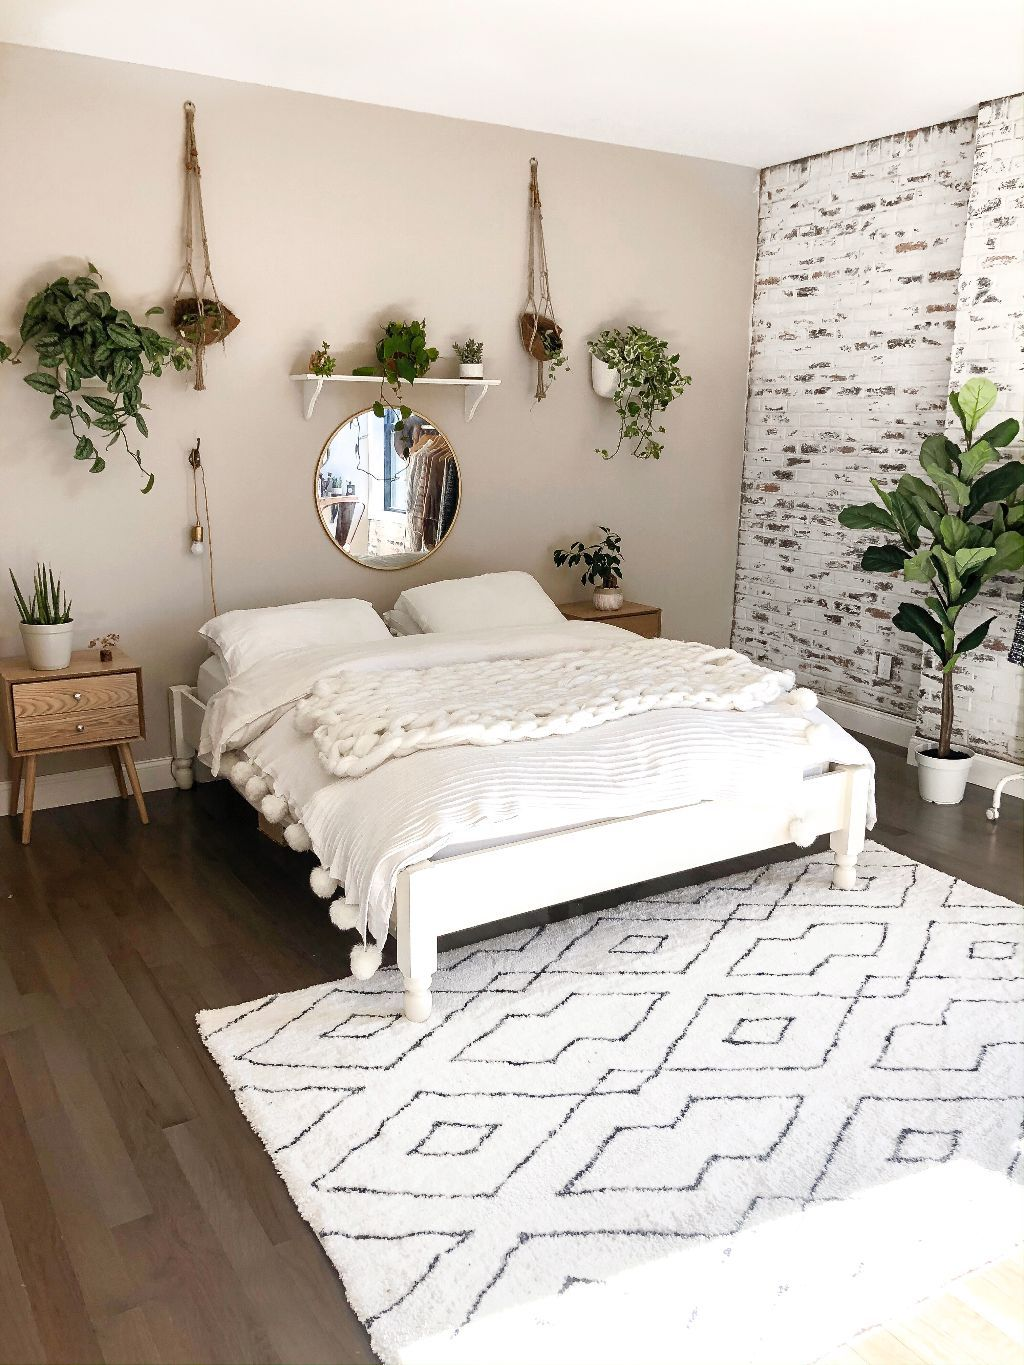 Best My Boho Minimalist Bedroom Reveal White Brick Wall White Platform Bed Hanging Plants Black 400 x 300